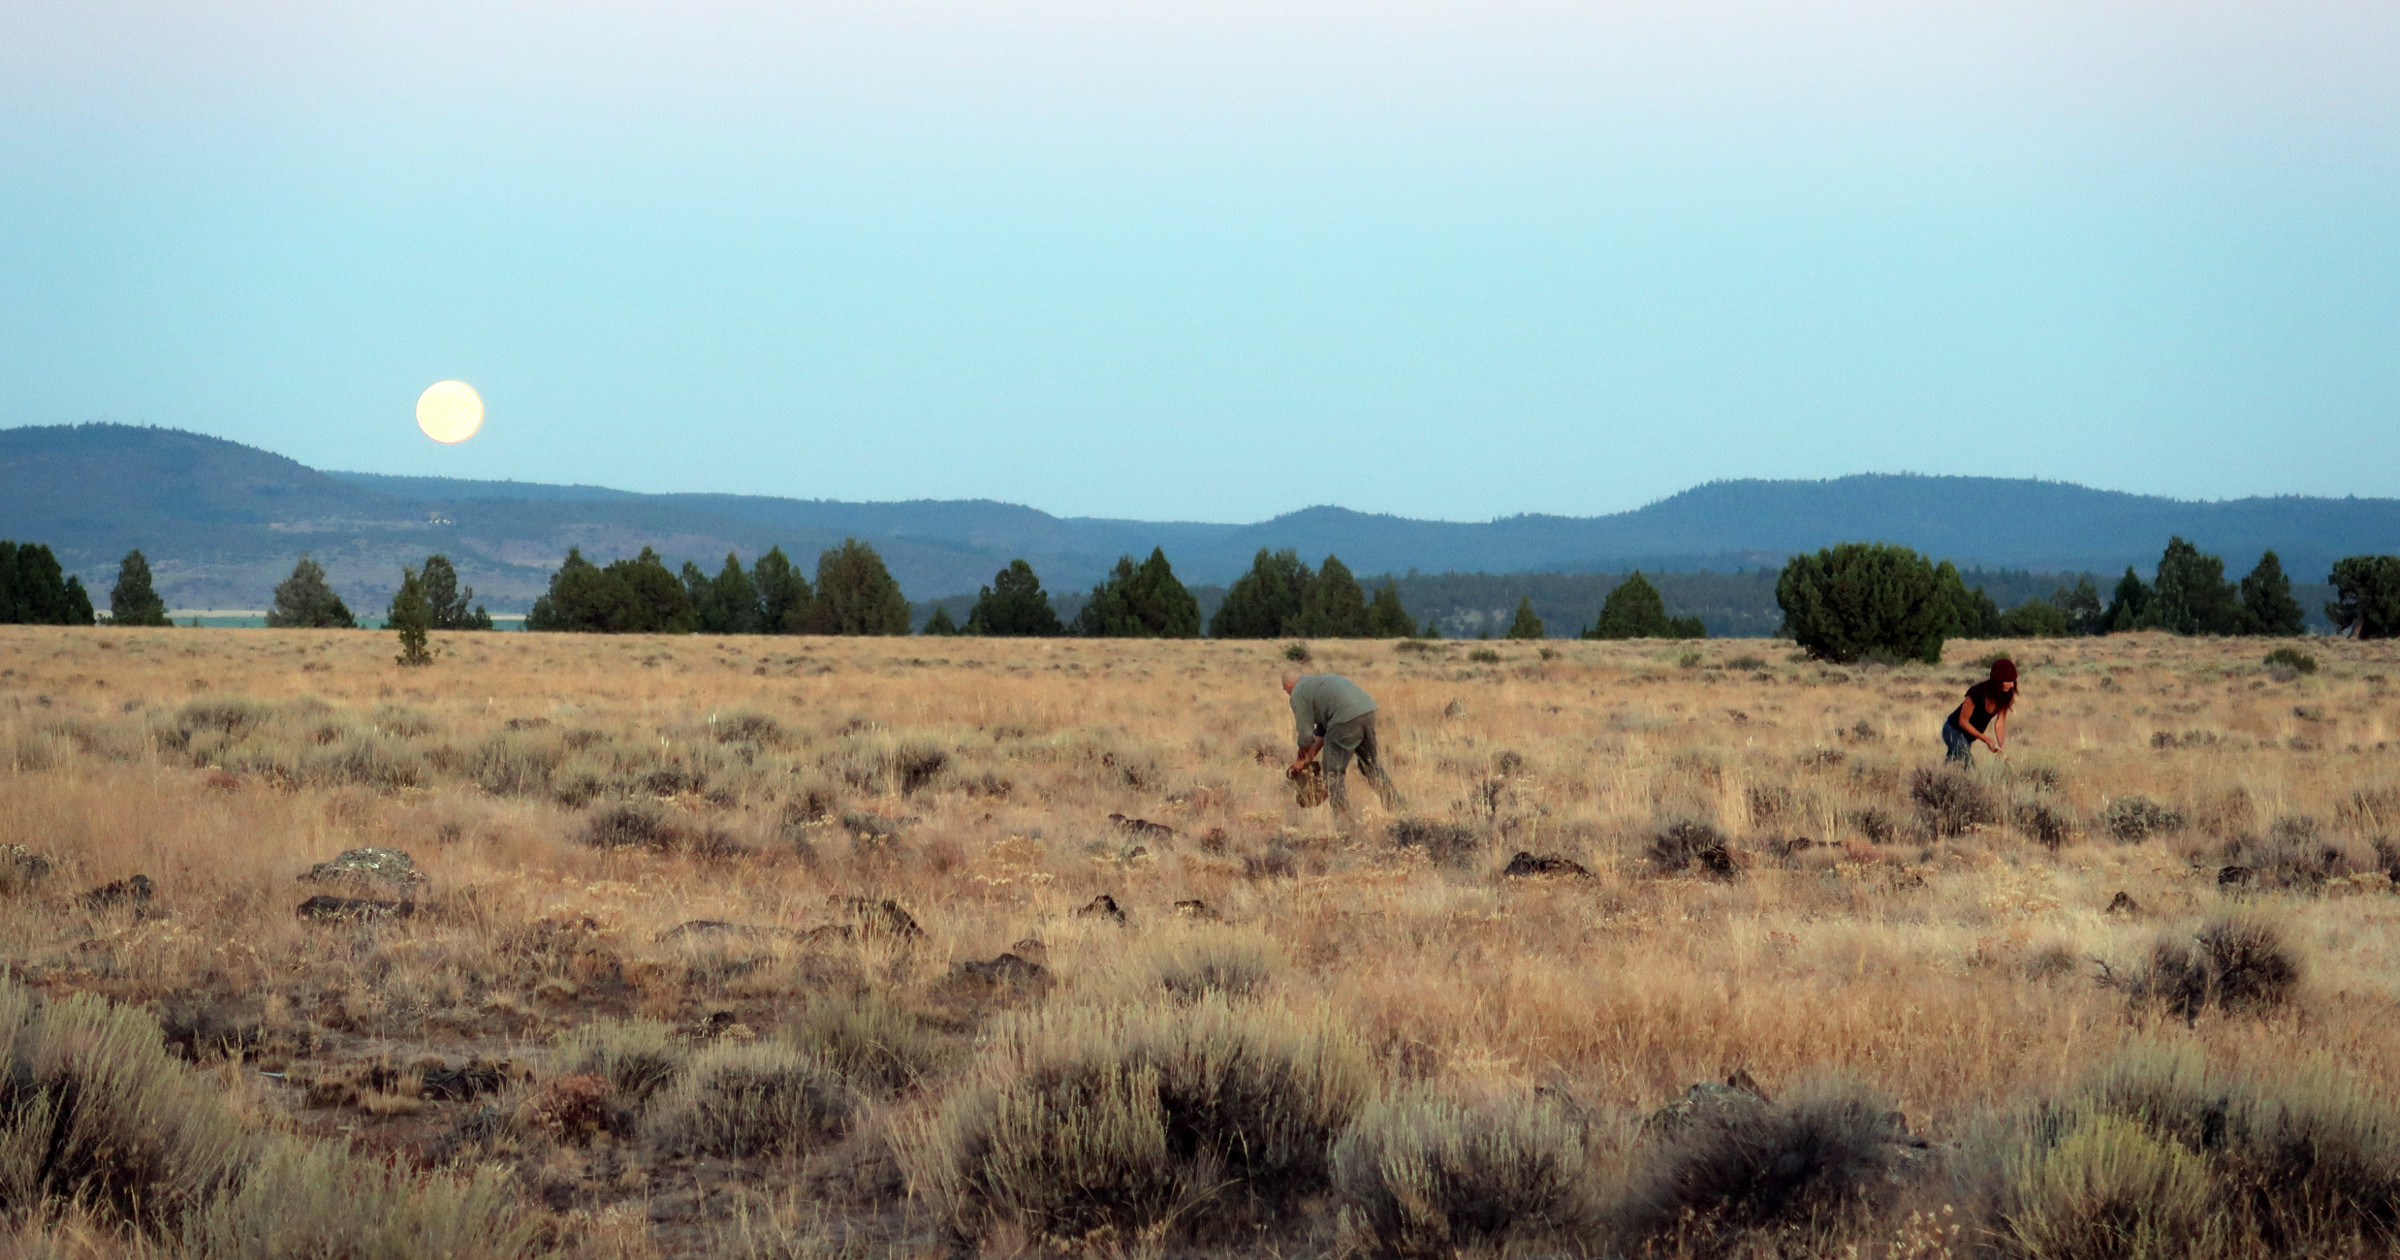 Wildtenders harvesting Yampah seed as the moon rises in eastern Oregon, August 2019 (Photo by author)